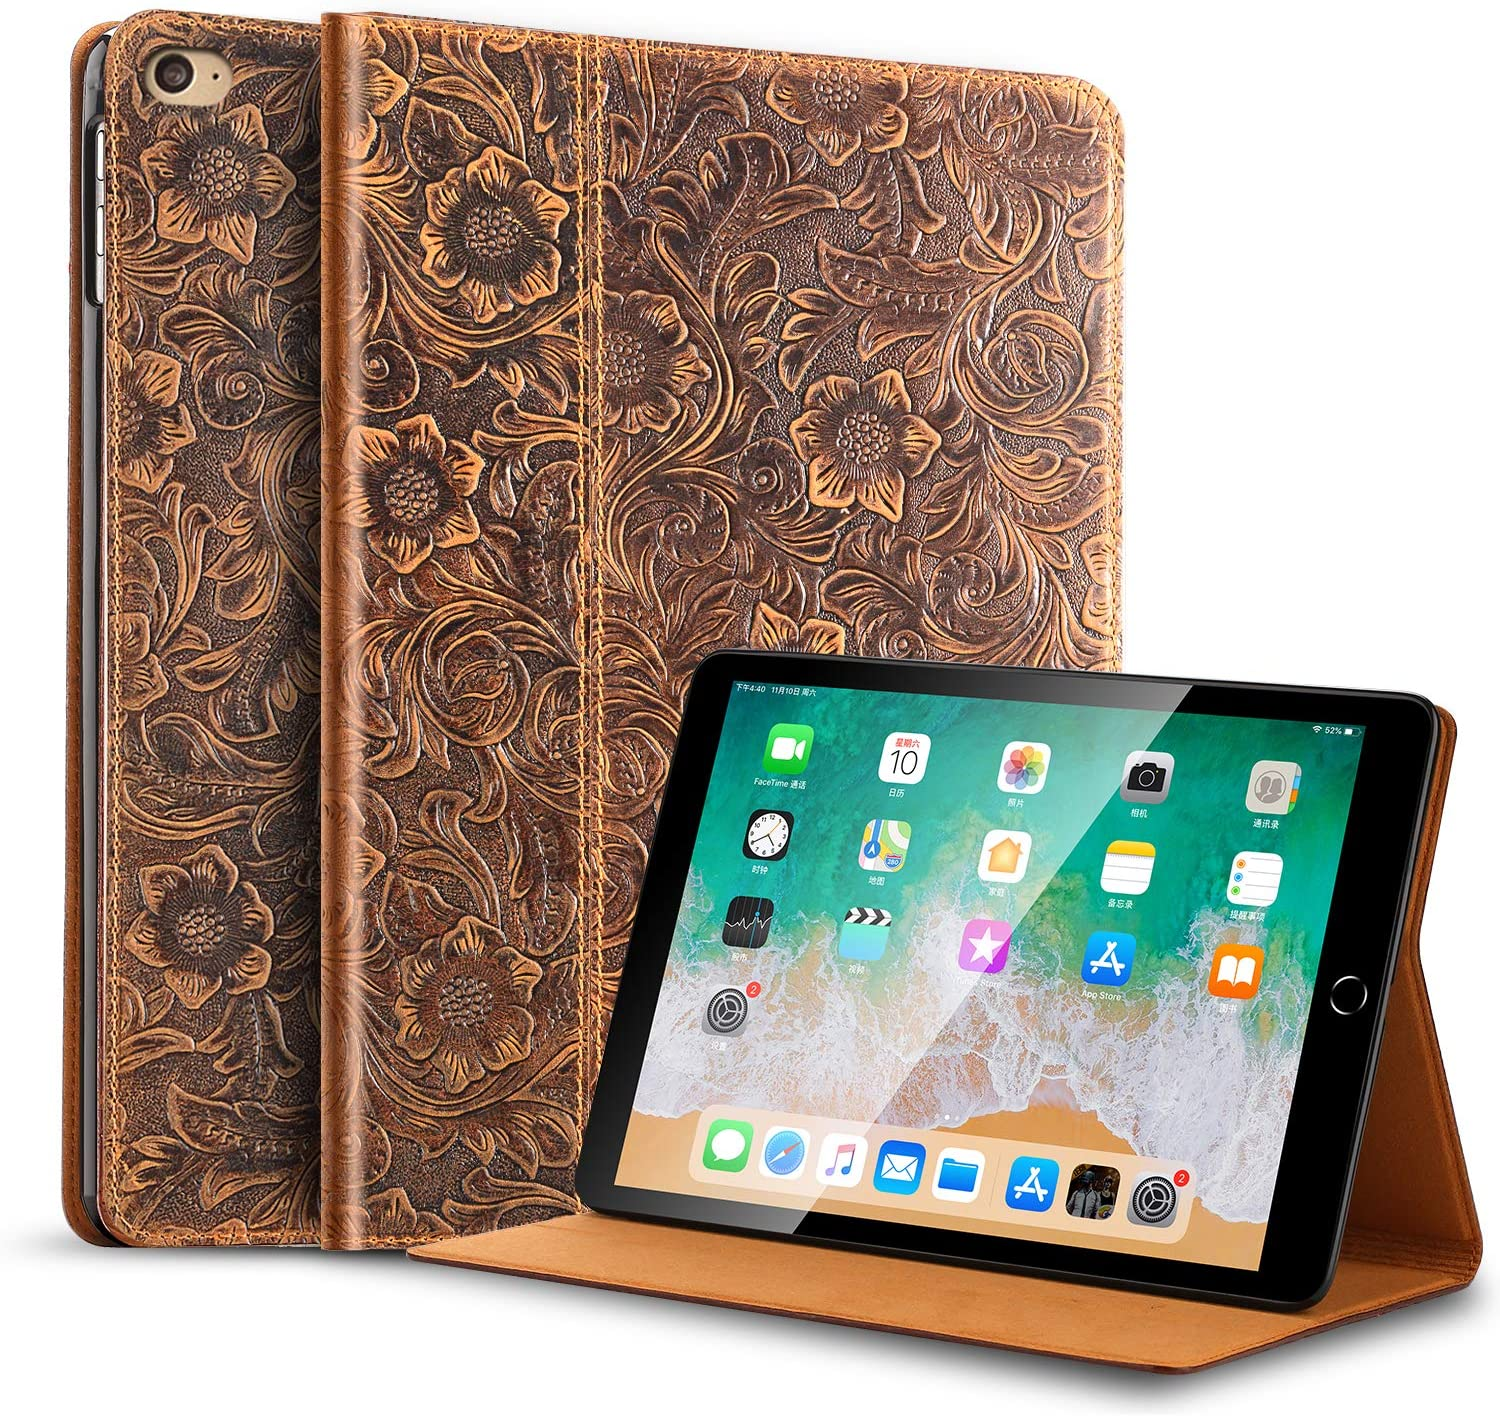 Gexmil for iPad 7.9 Inch mini4 Case, applies Cowhide Folio Cover for iPad mini3/2/1nd Generation Genuine Leather case,Pattern-Brown